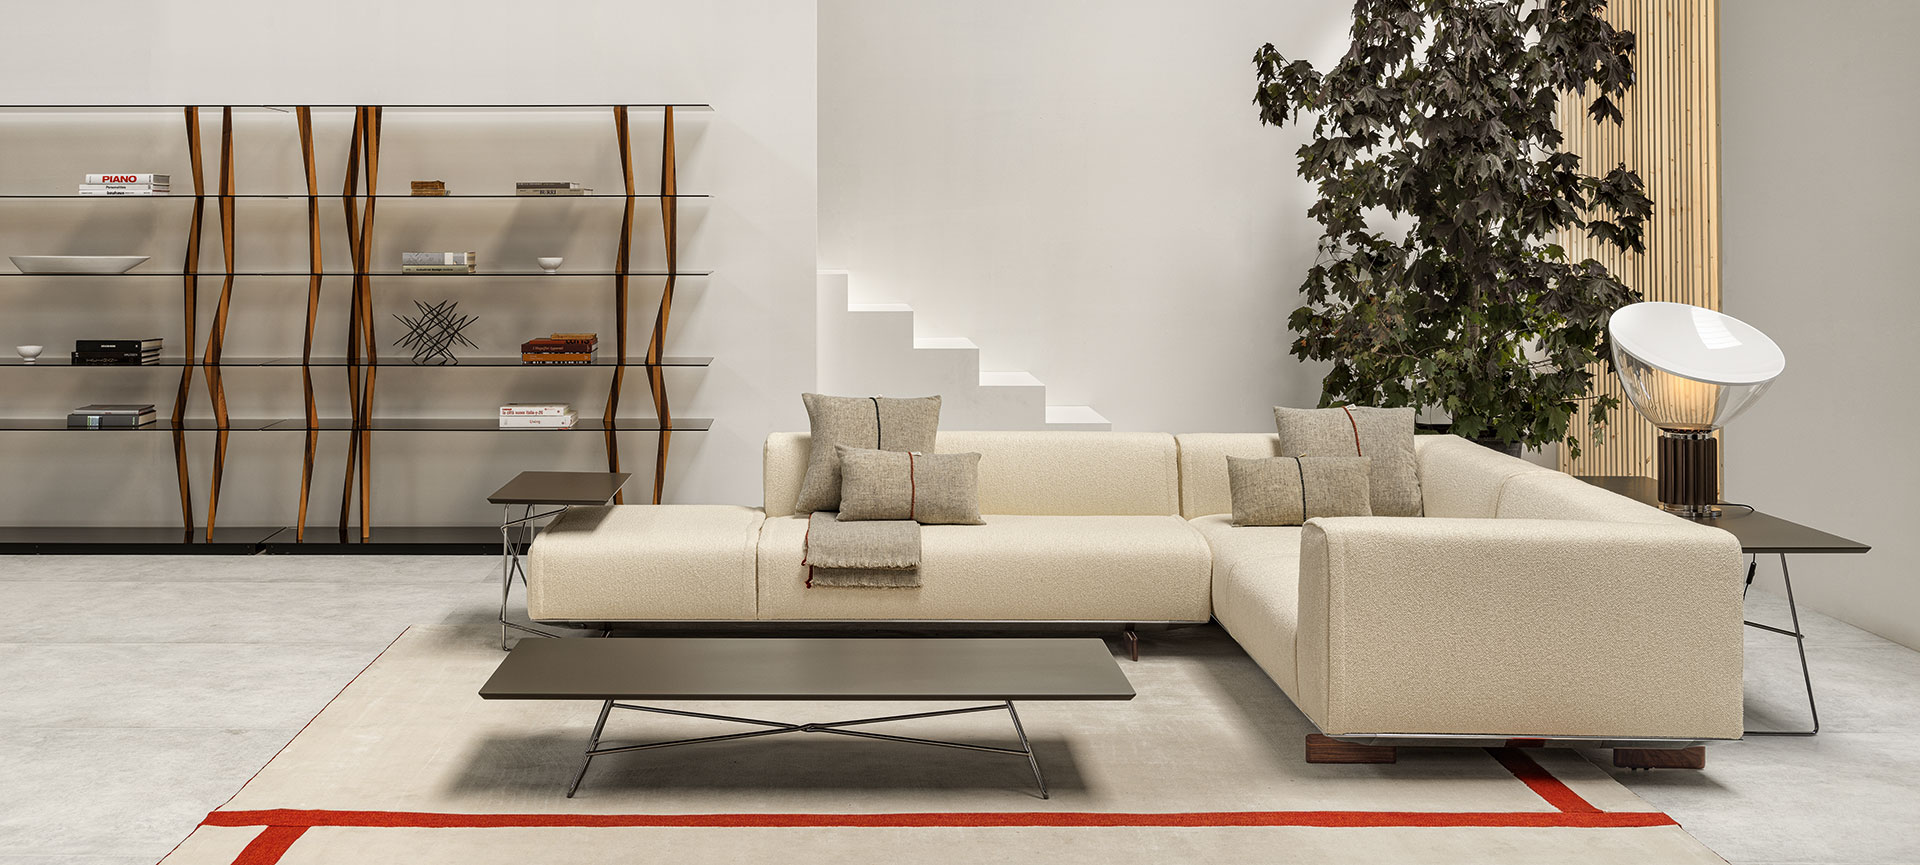 Living room with white Coleman sofa